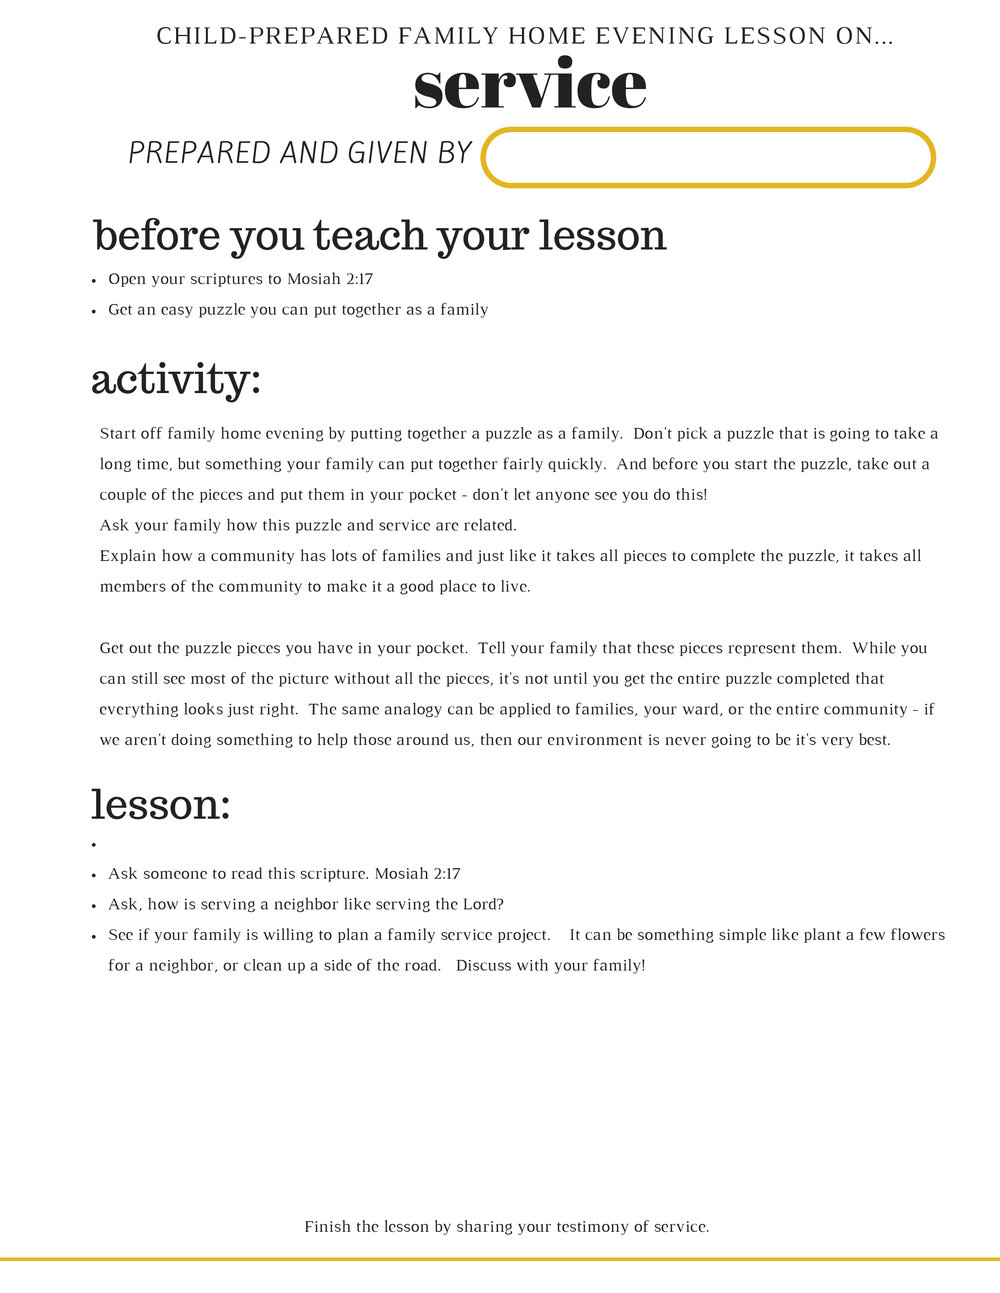 FREE PRINTABLE FHE LESSON ON FOLLOWING CHIRST'S EXAMPLE IN SERVICE